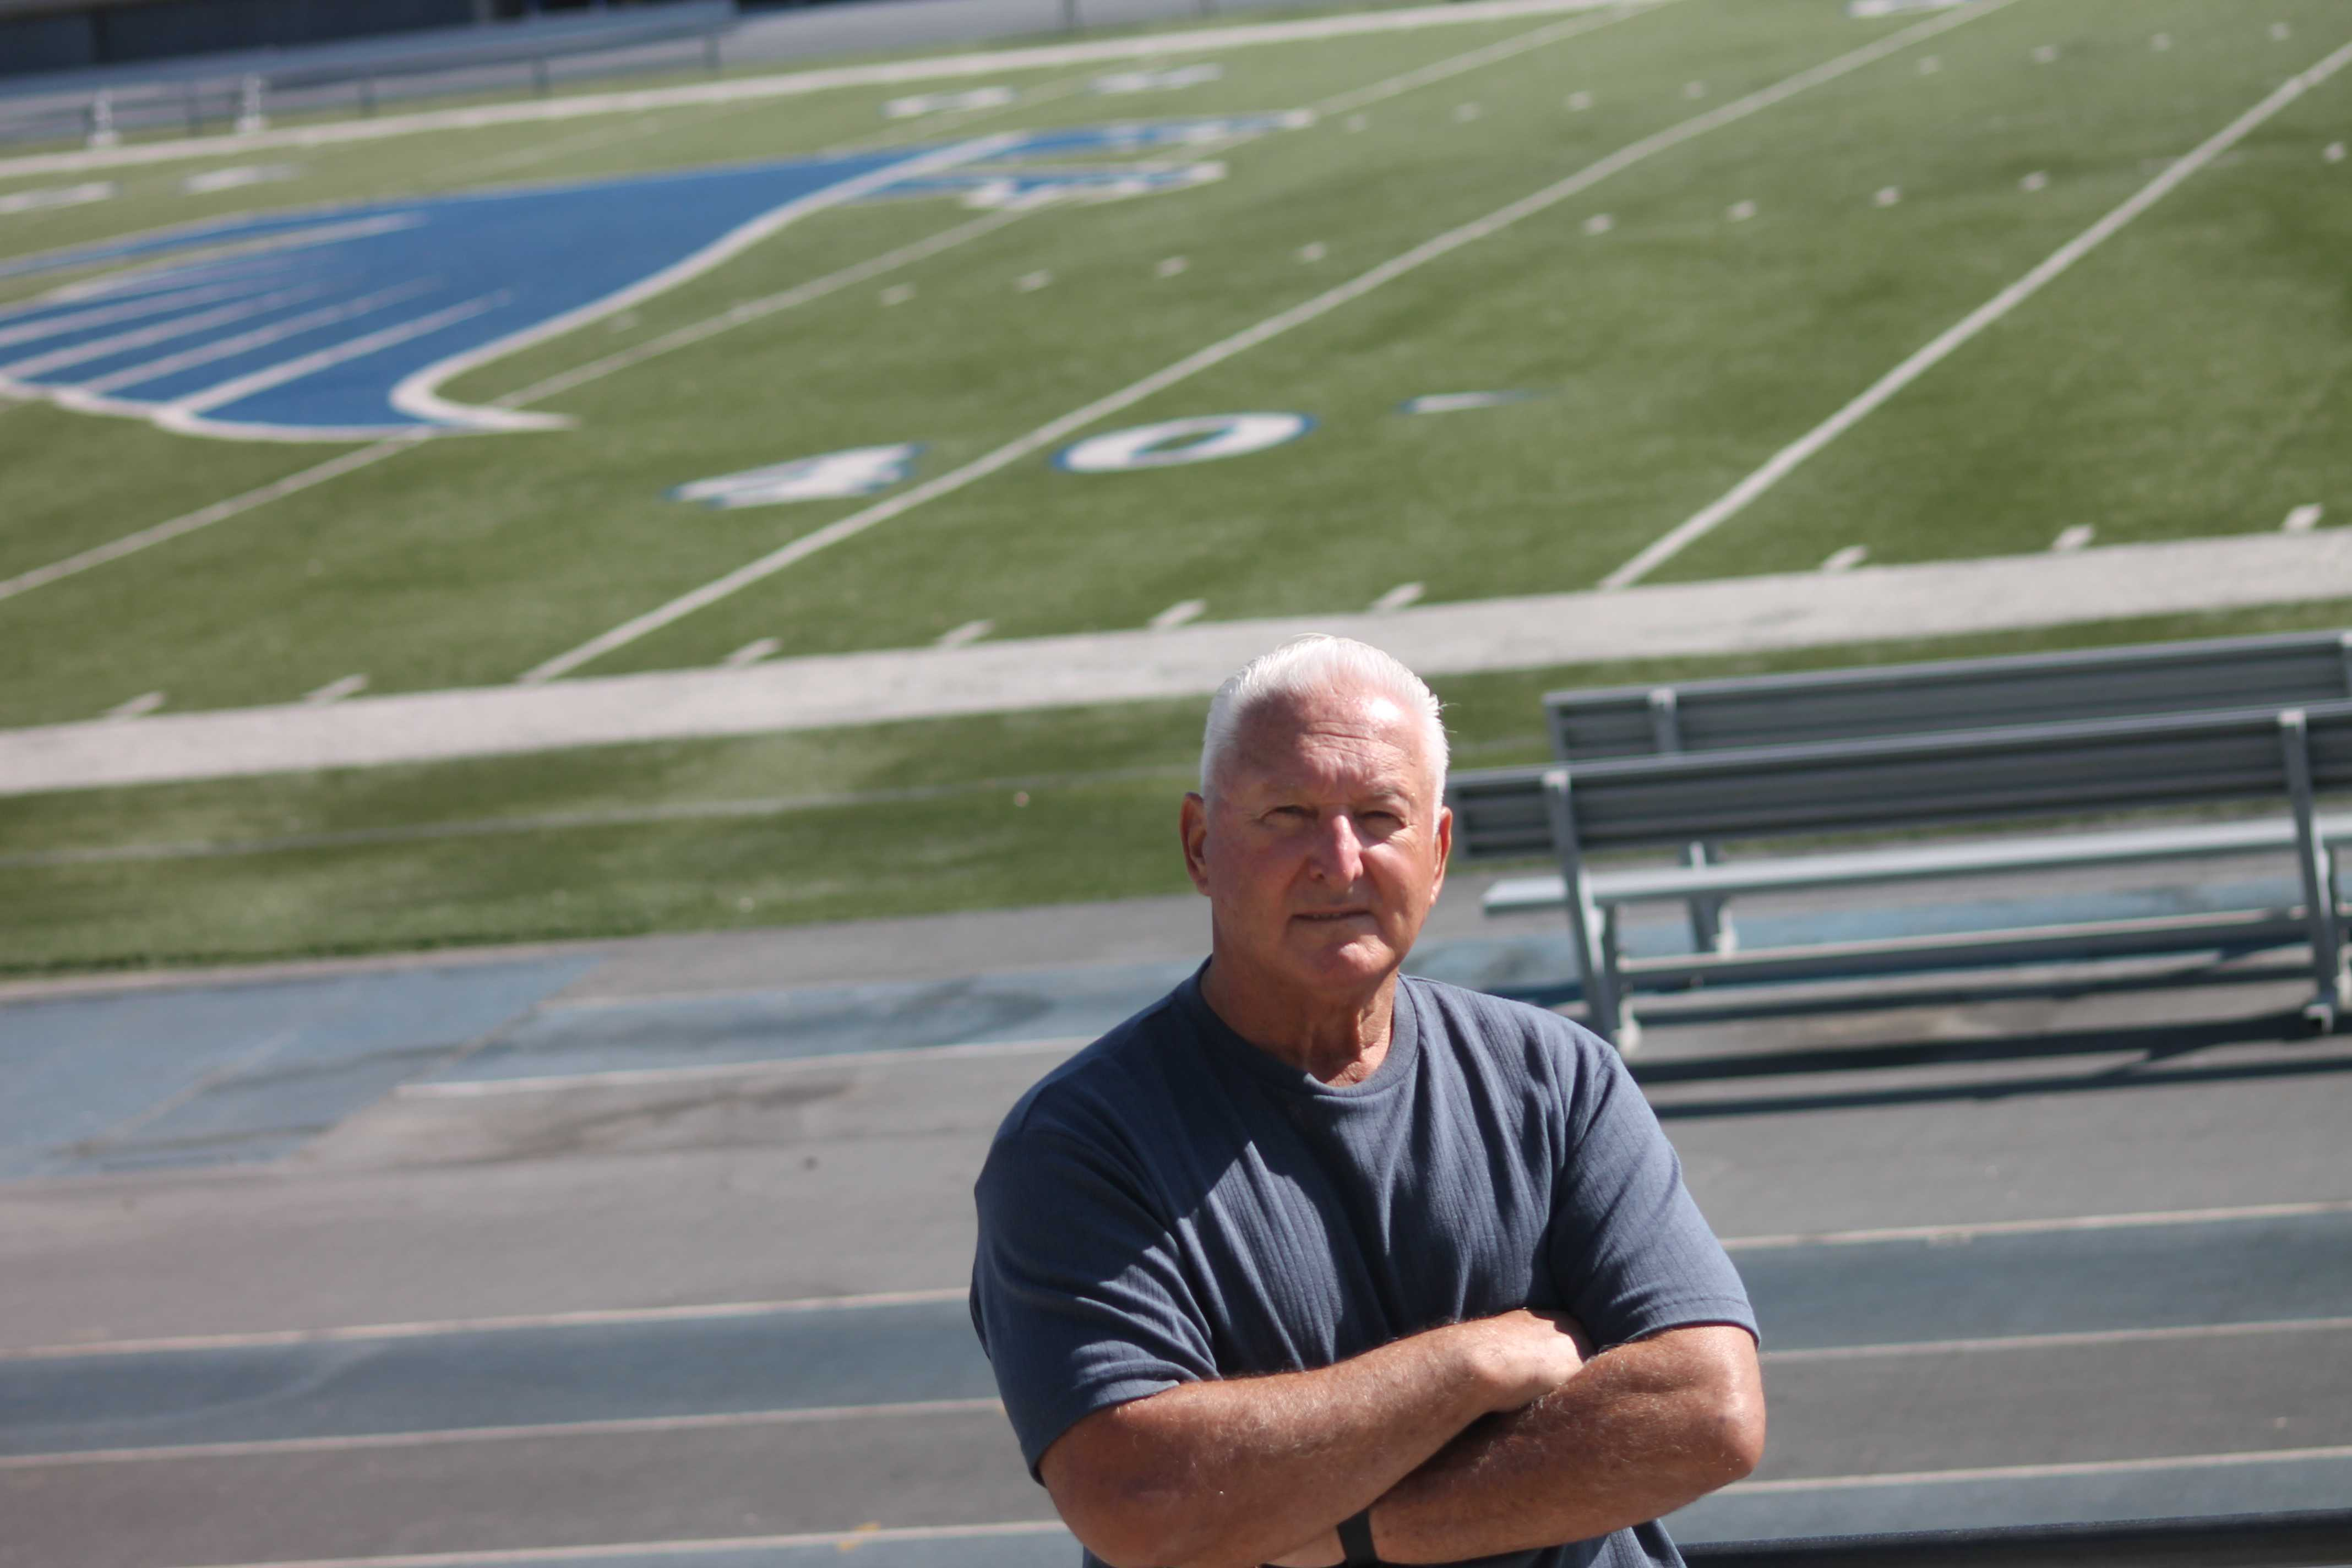 Football head coach Frank Mazzotta  standing out in the Falcon football stadium. He noted that his life centers around football and was truly an inspiration in his life.